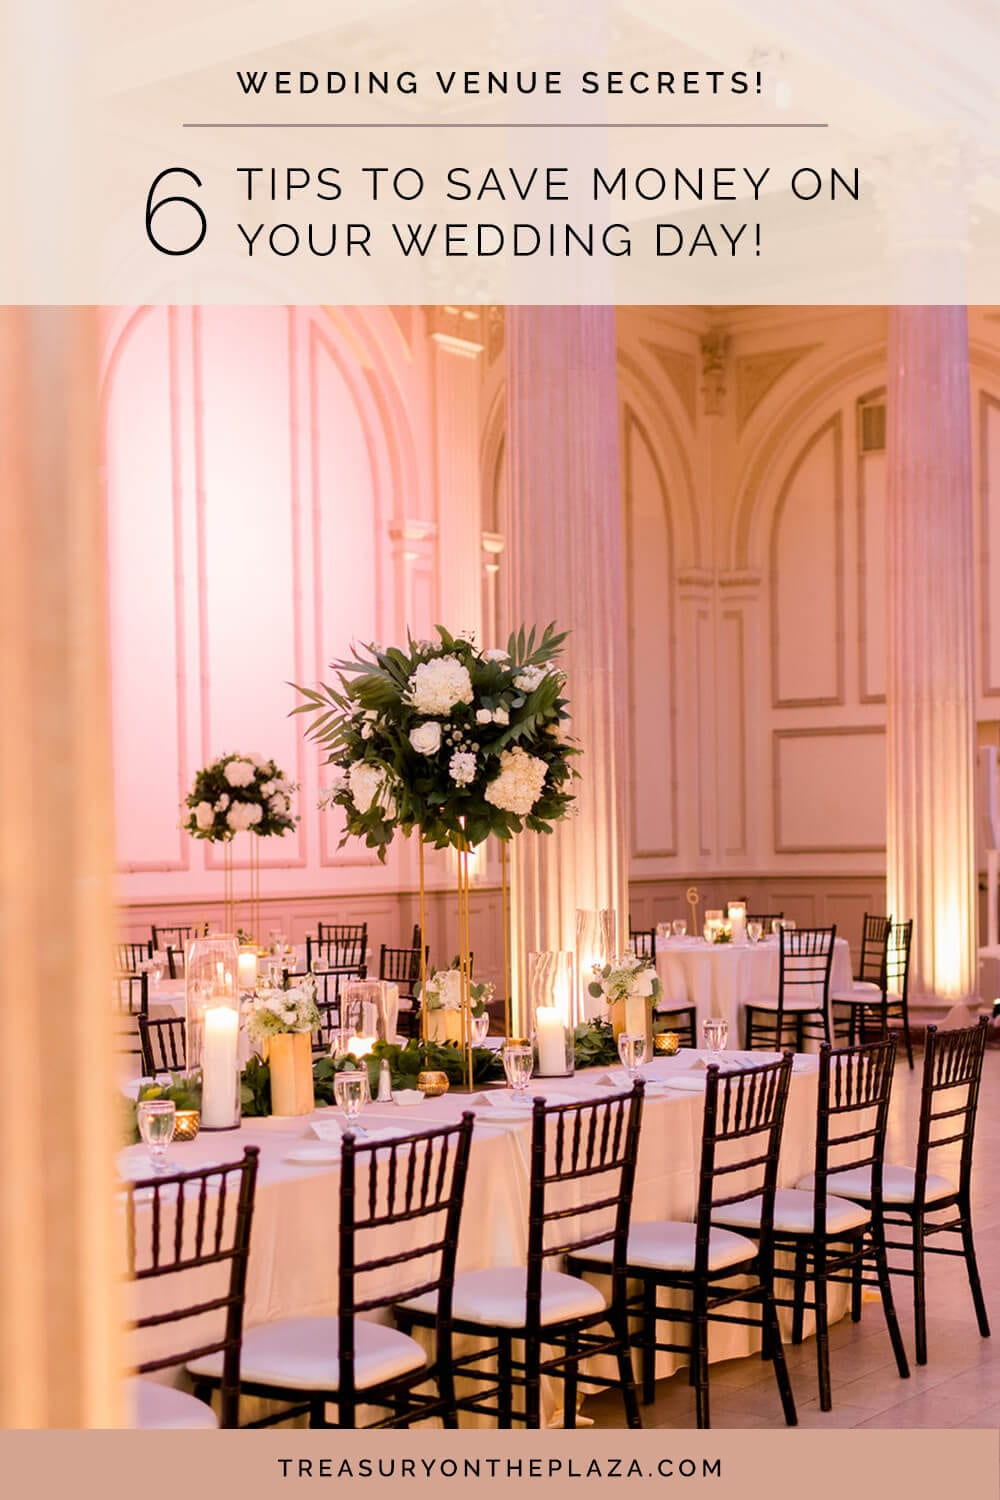 Saving Money on Your Wedding Day | Wedding Cost Saving Tips From The Wedding Venue Experts at The Treasury Venue Collection